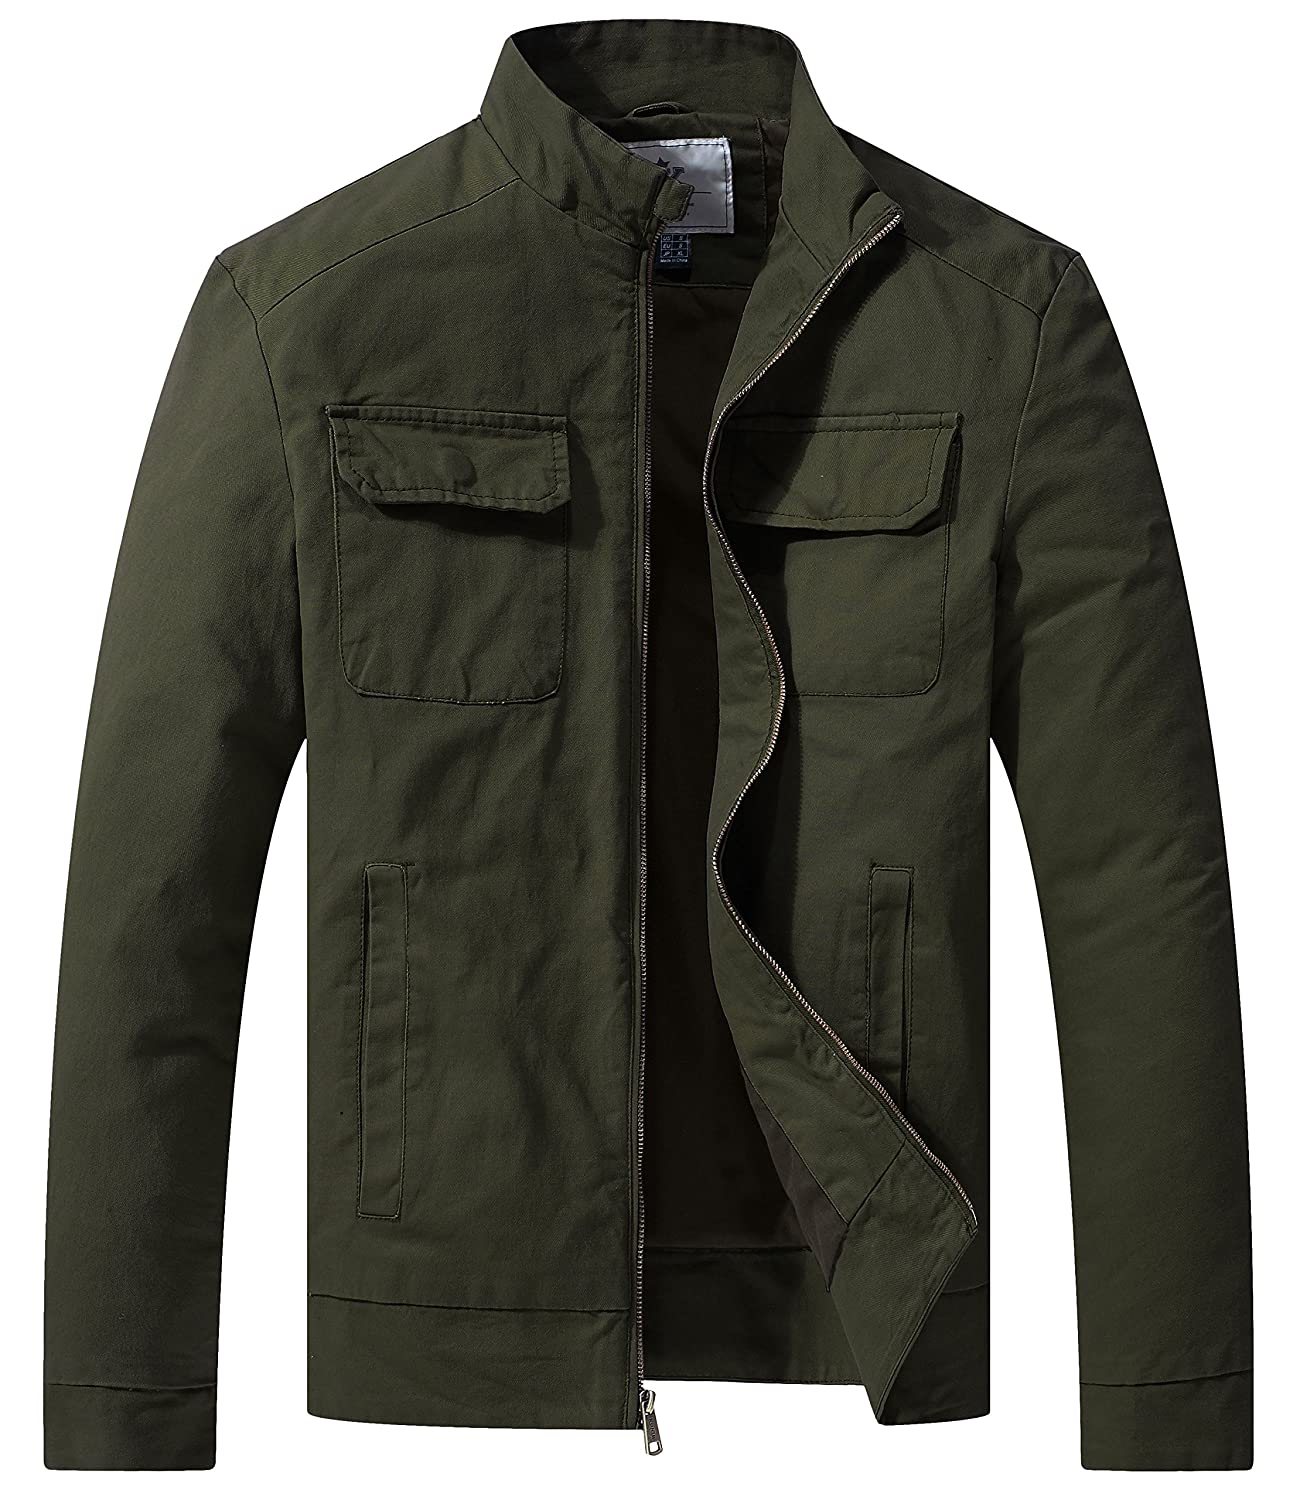 Men's Fall Casual Army Lightweight Jacket